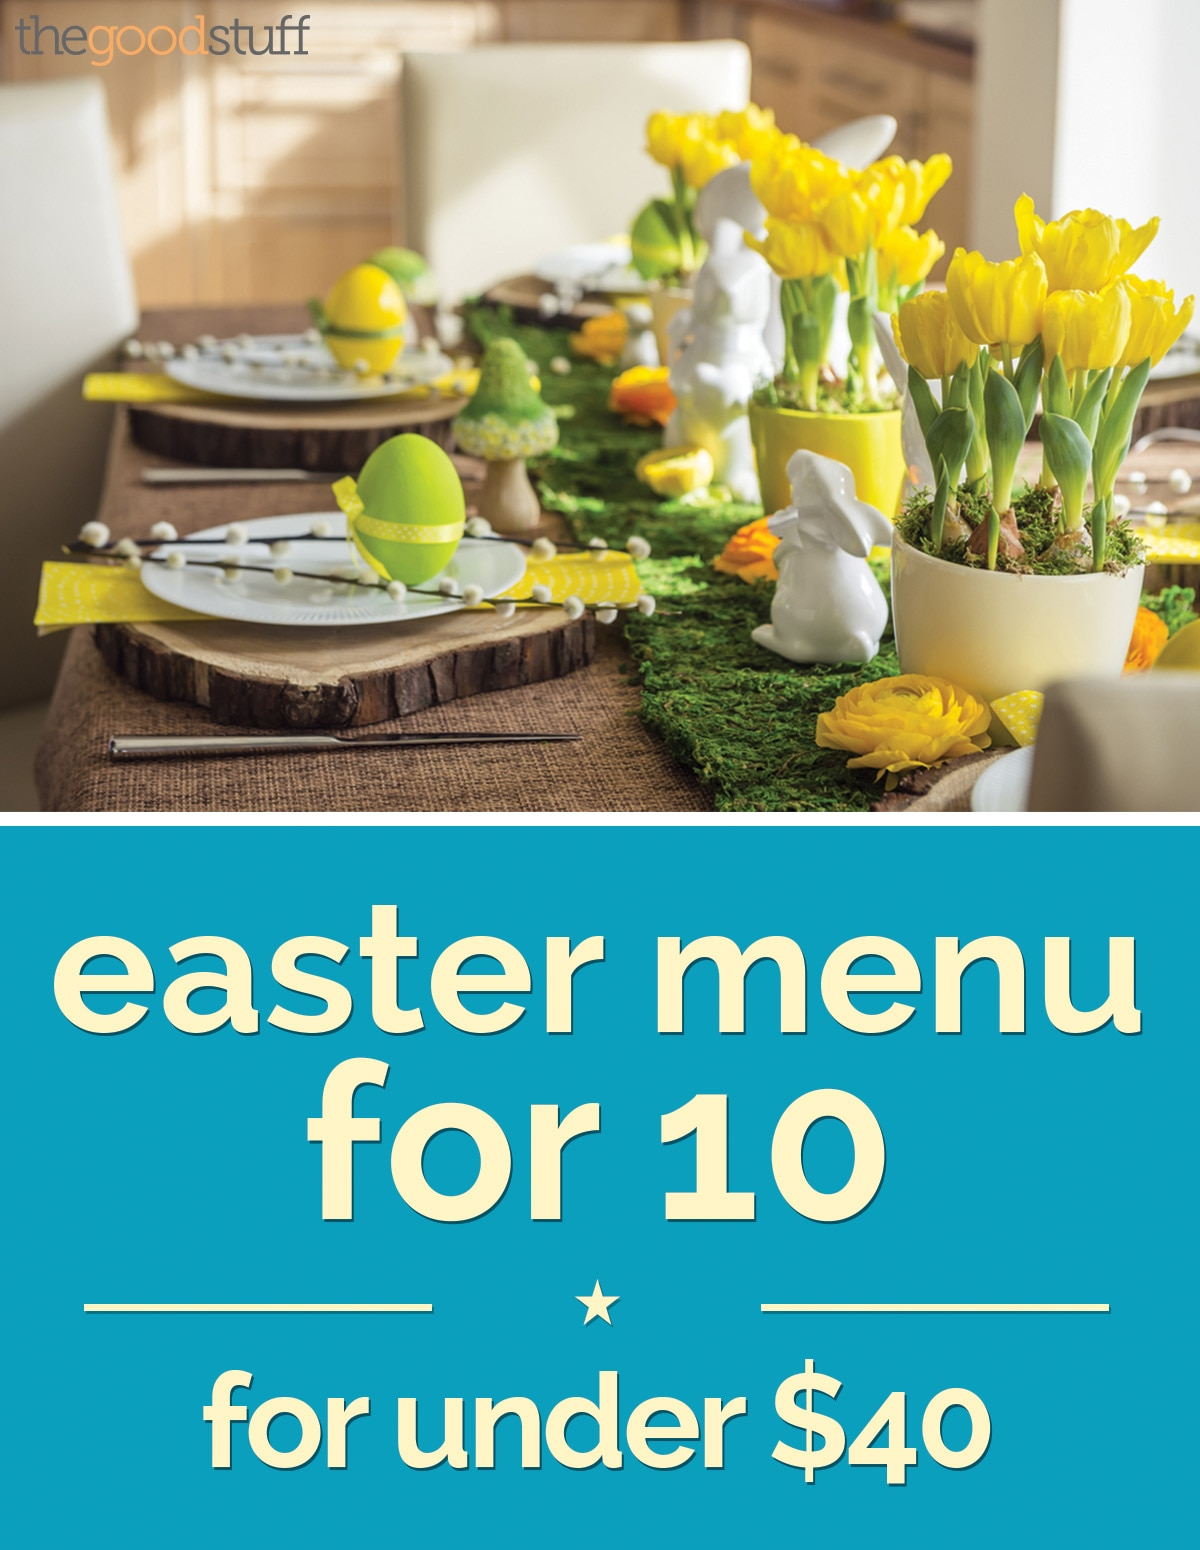 Easter menu for 10 for under $40